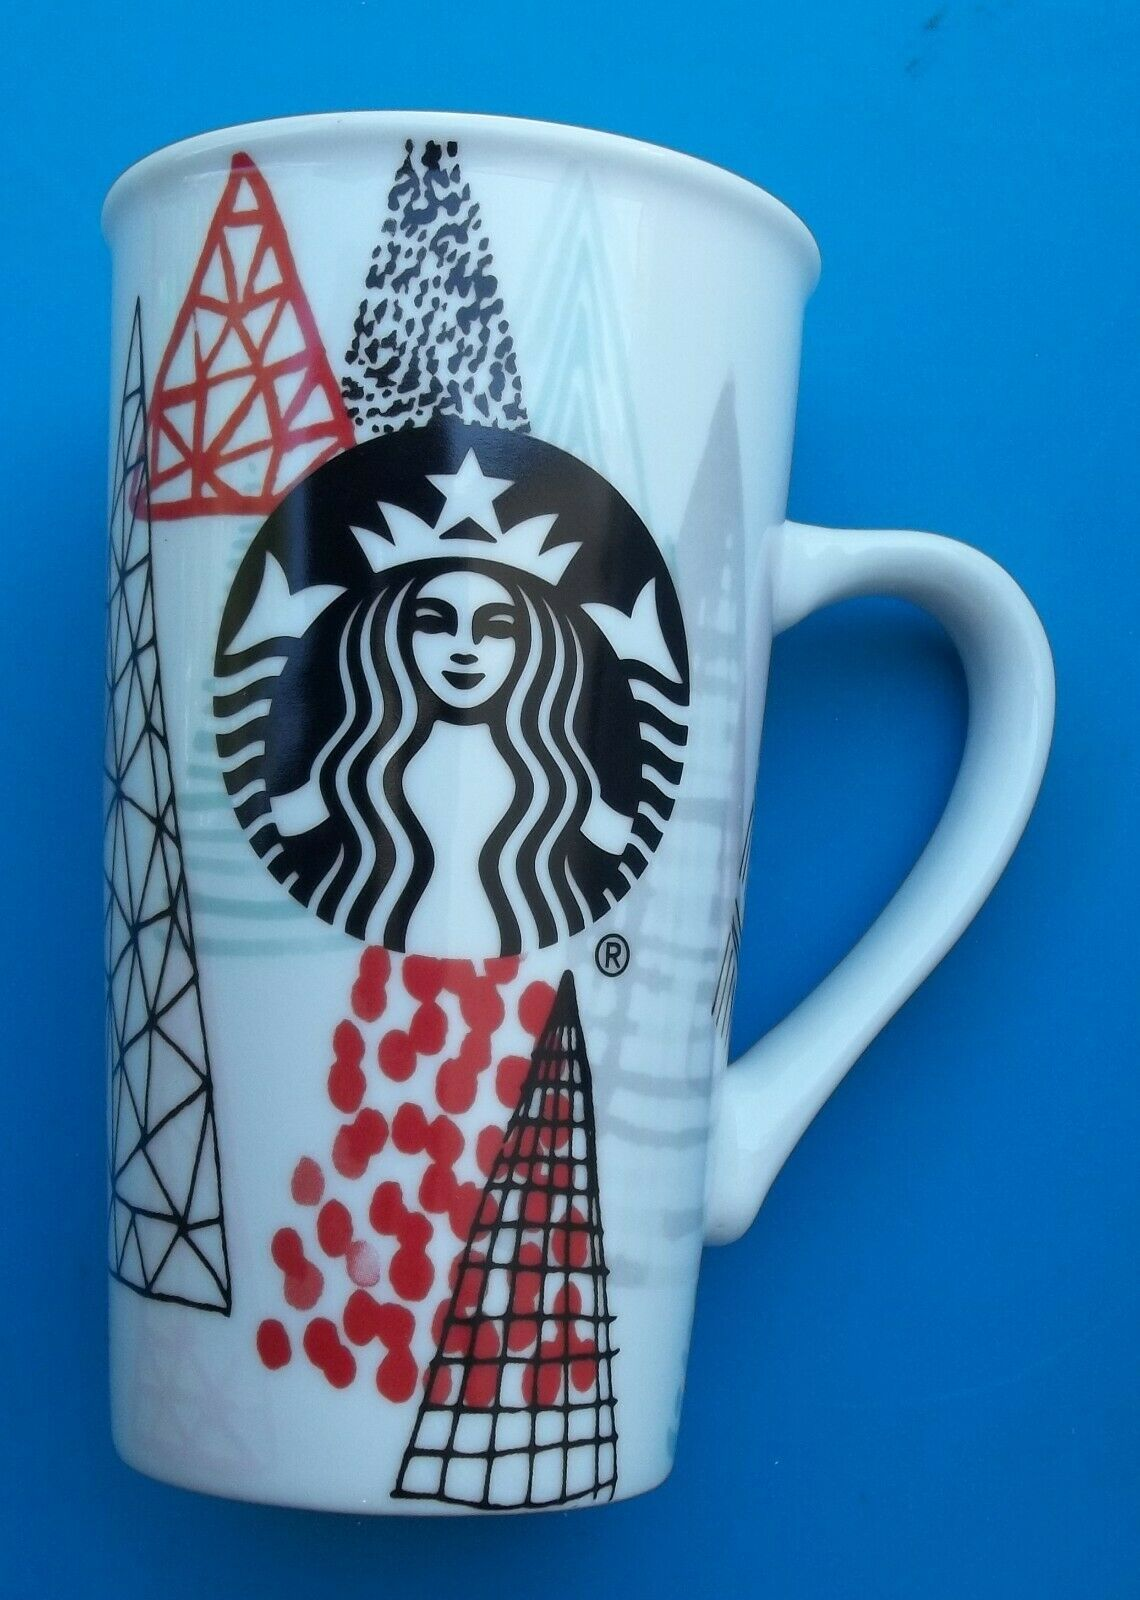 STARBUCKS Tall Coffee Cup 16oz Trees Design Christmas Nice